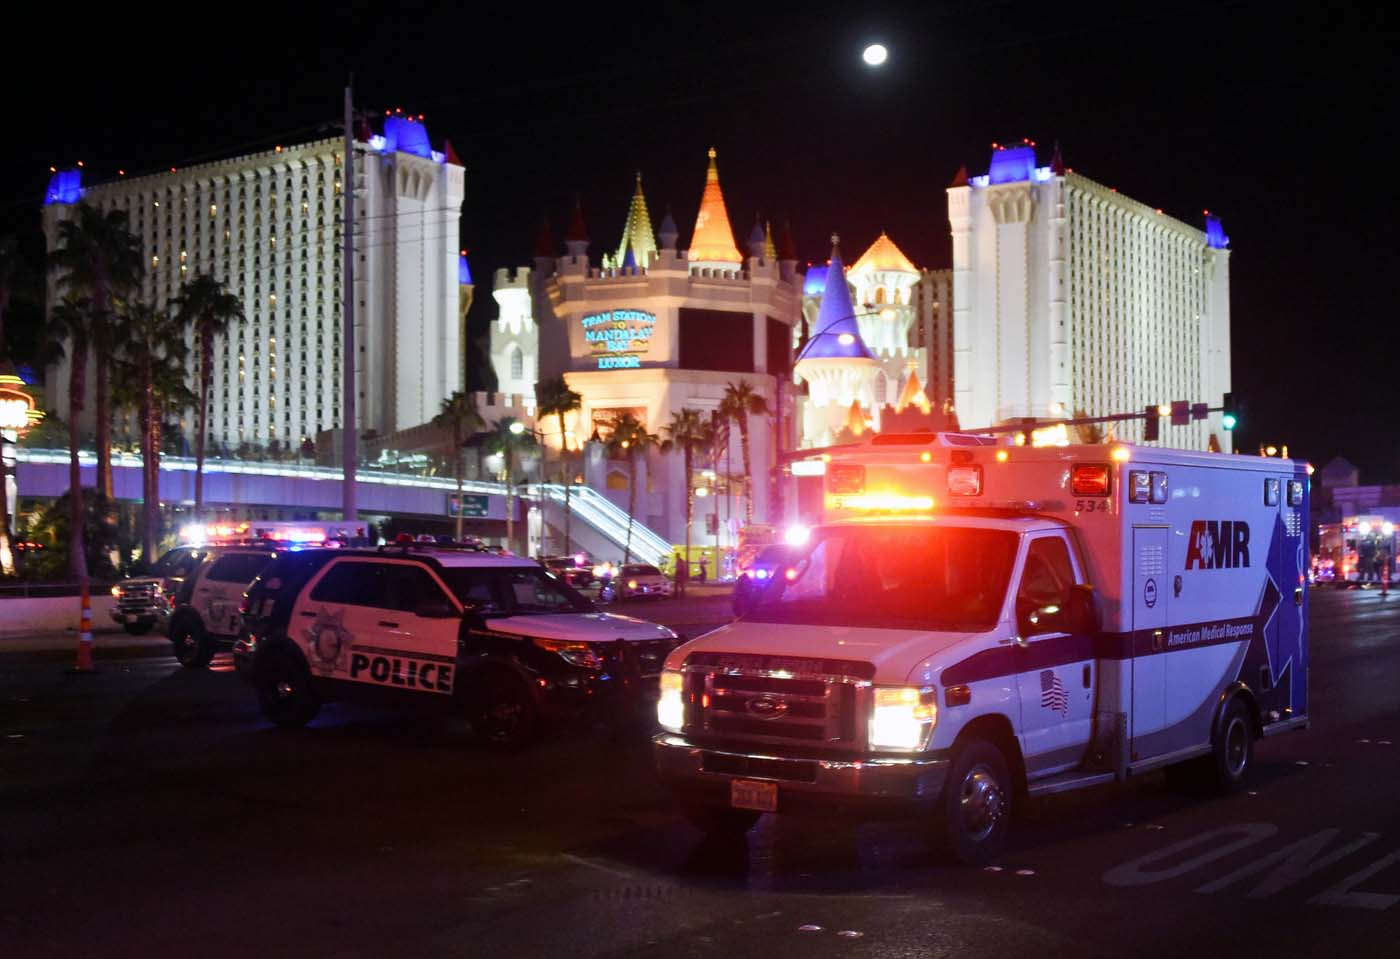 LAS VEGAS, NV - OCTOBER 02: An ambulance leaves the intersection of Las Vegas Boulevard and Tropicana Ave. after a mass shooting at a country music festival nearby on October 2, 2017 in Las Vegas, Nevada. A gunman has opened fire on a music festival in Las Vegas, leaving at least 20 people dead and more than 100 injured. Police have confirmed that one suspect has been shot. The investigation is ongoing. Ethan Miller/Getty Images/AFP